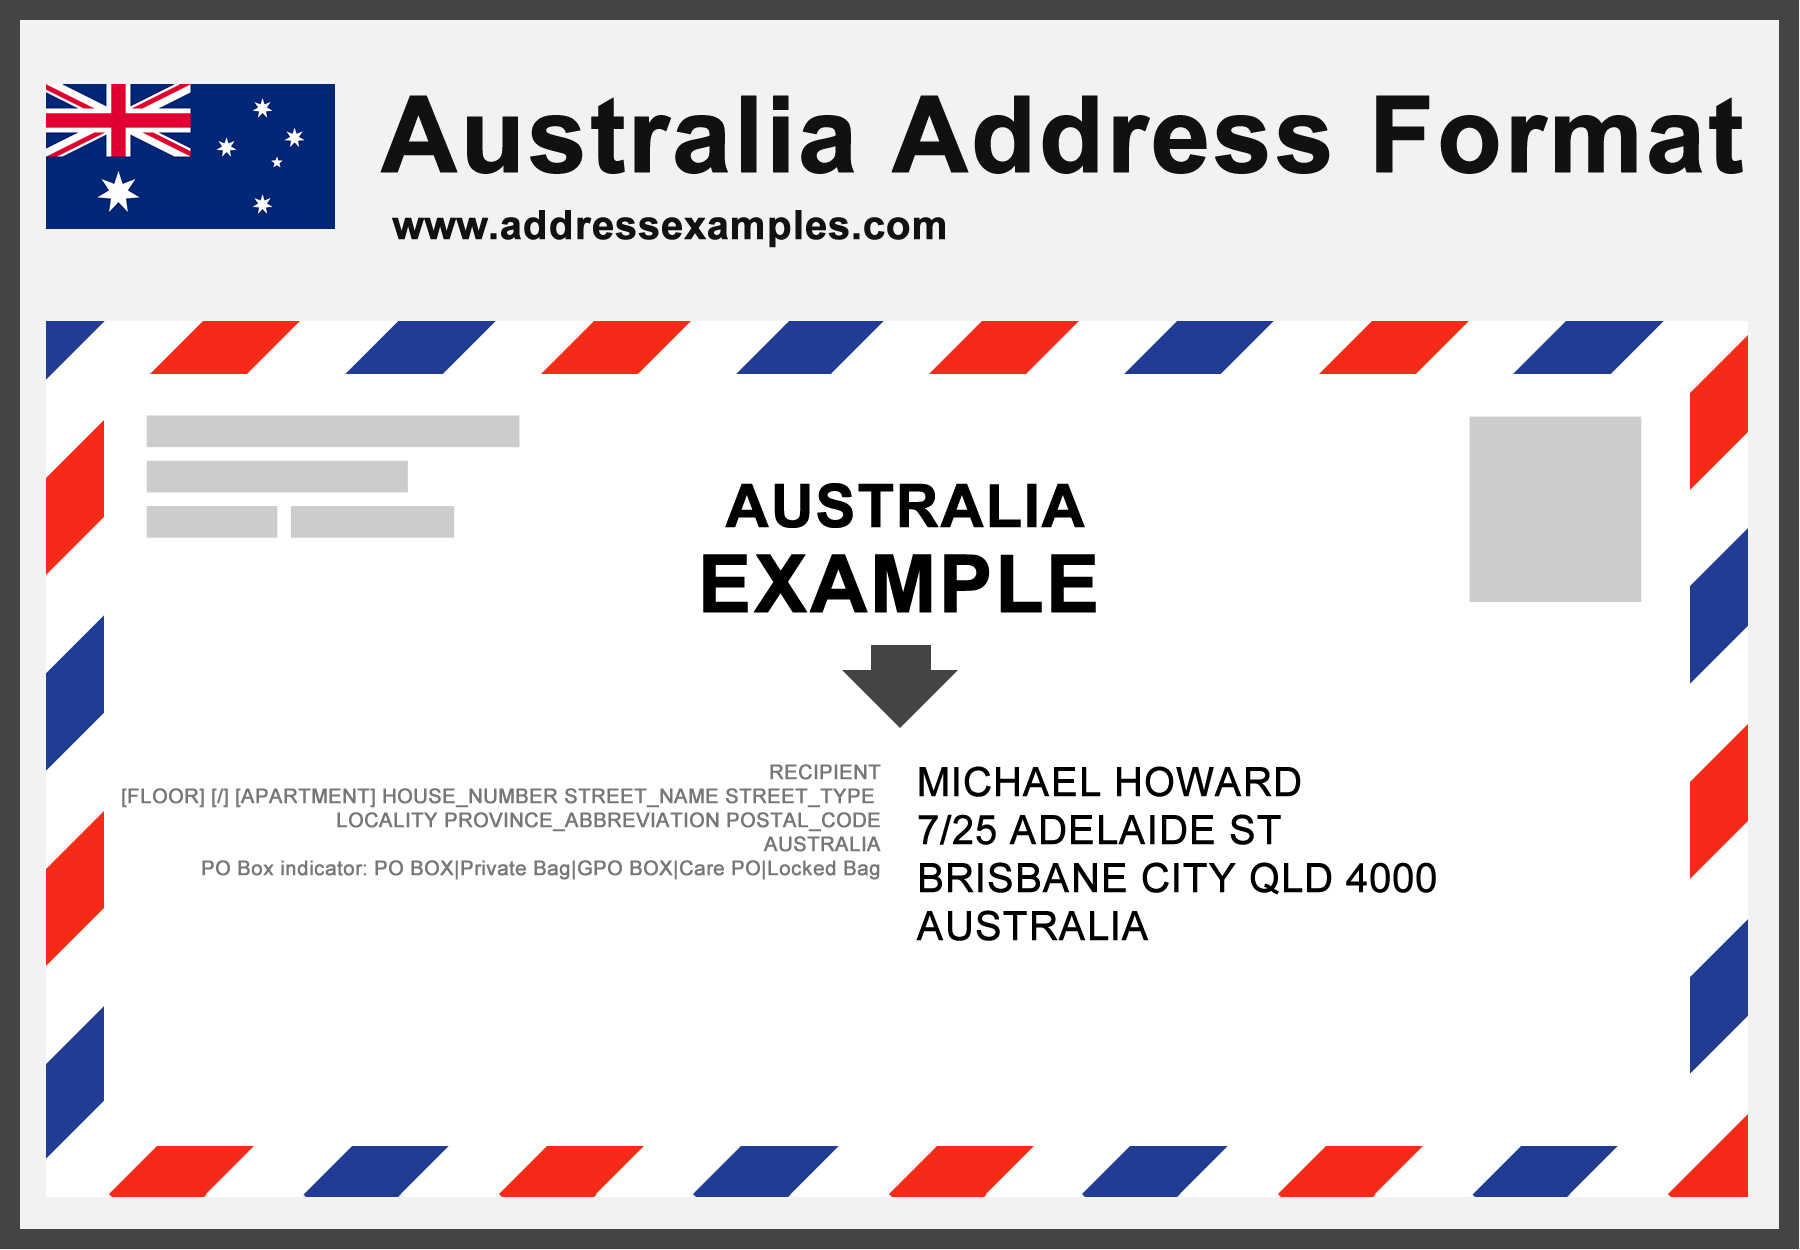 Australia Address Format AddressExamples.com